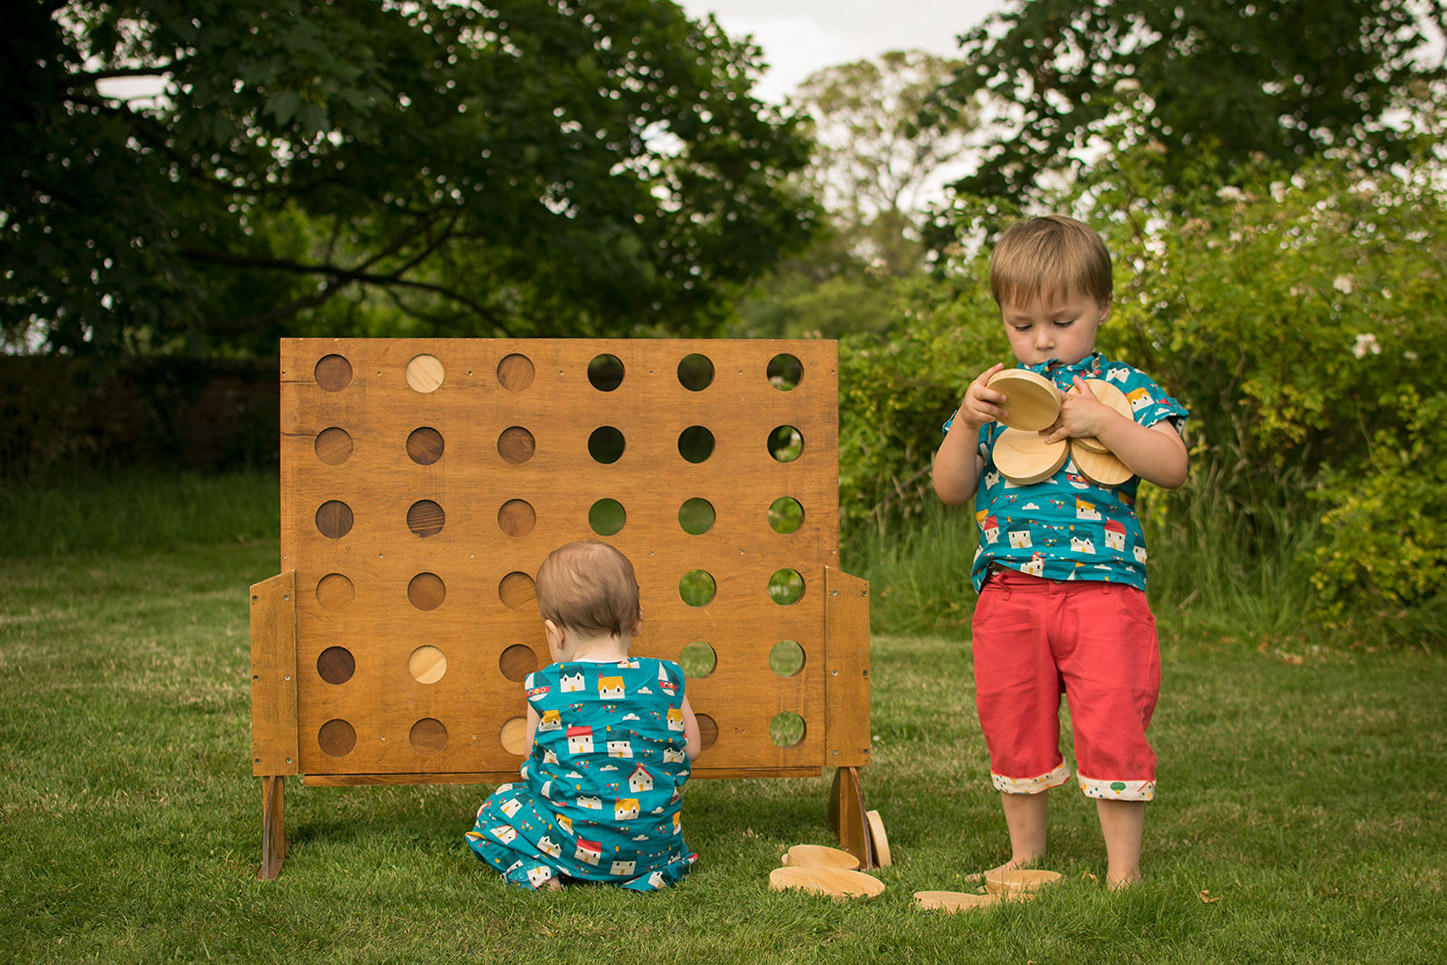 Two brothers, pre-schooler and baby wearing Sail Away playsuit and Sail Away Playaway top with Pillar Box red shorts by Little Green Radicals at Chastleton House, National Trust, near Stow0on-the-Wold - Playing with large garden wooden Connect 4 set